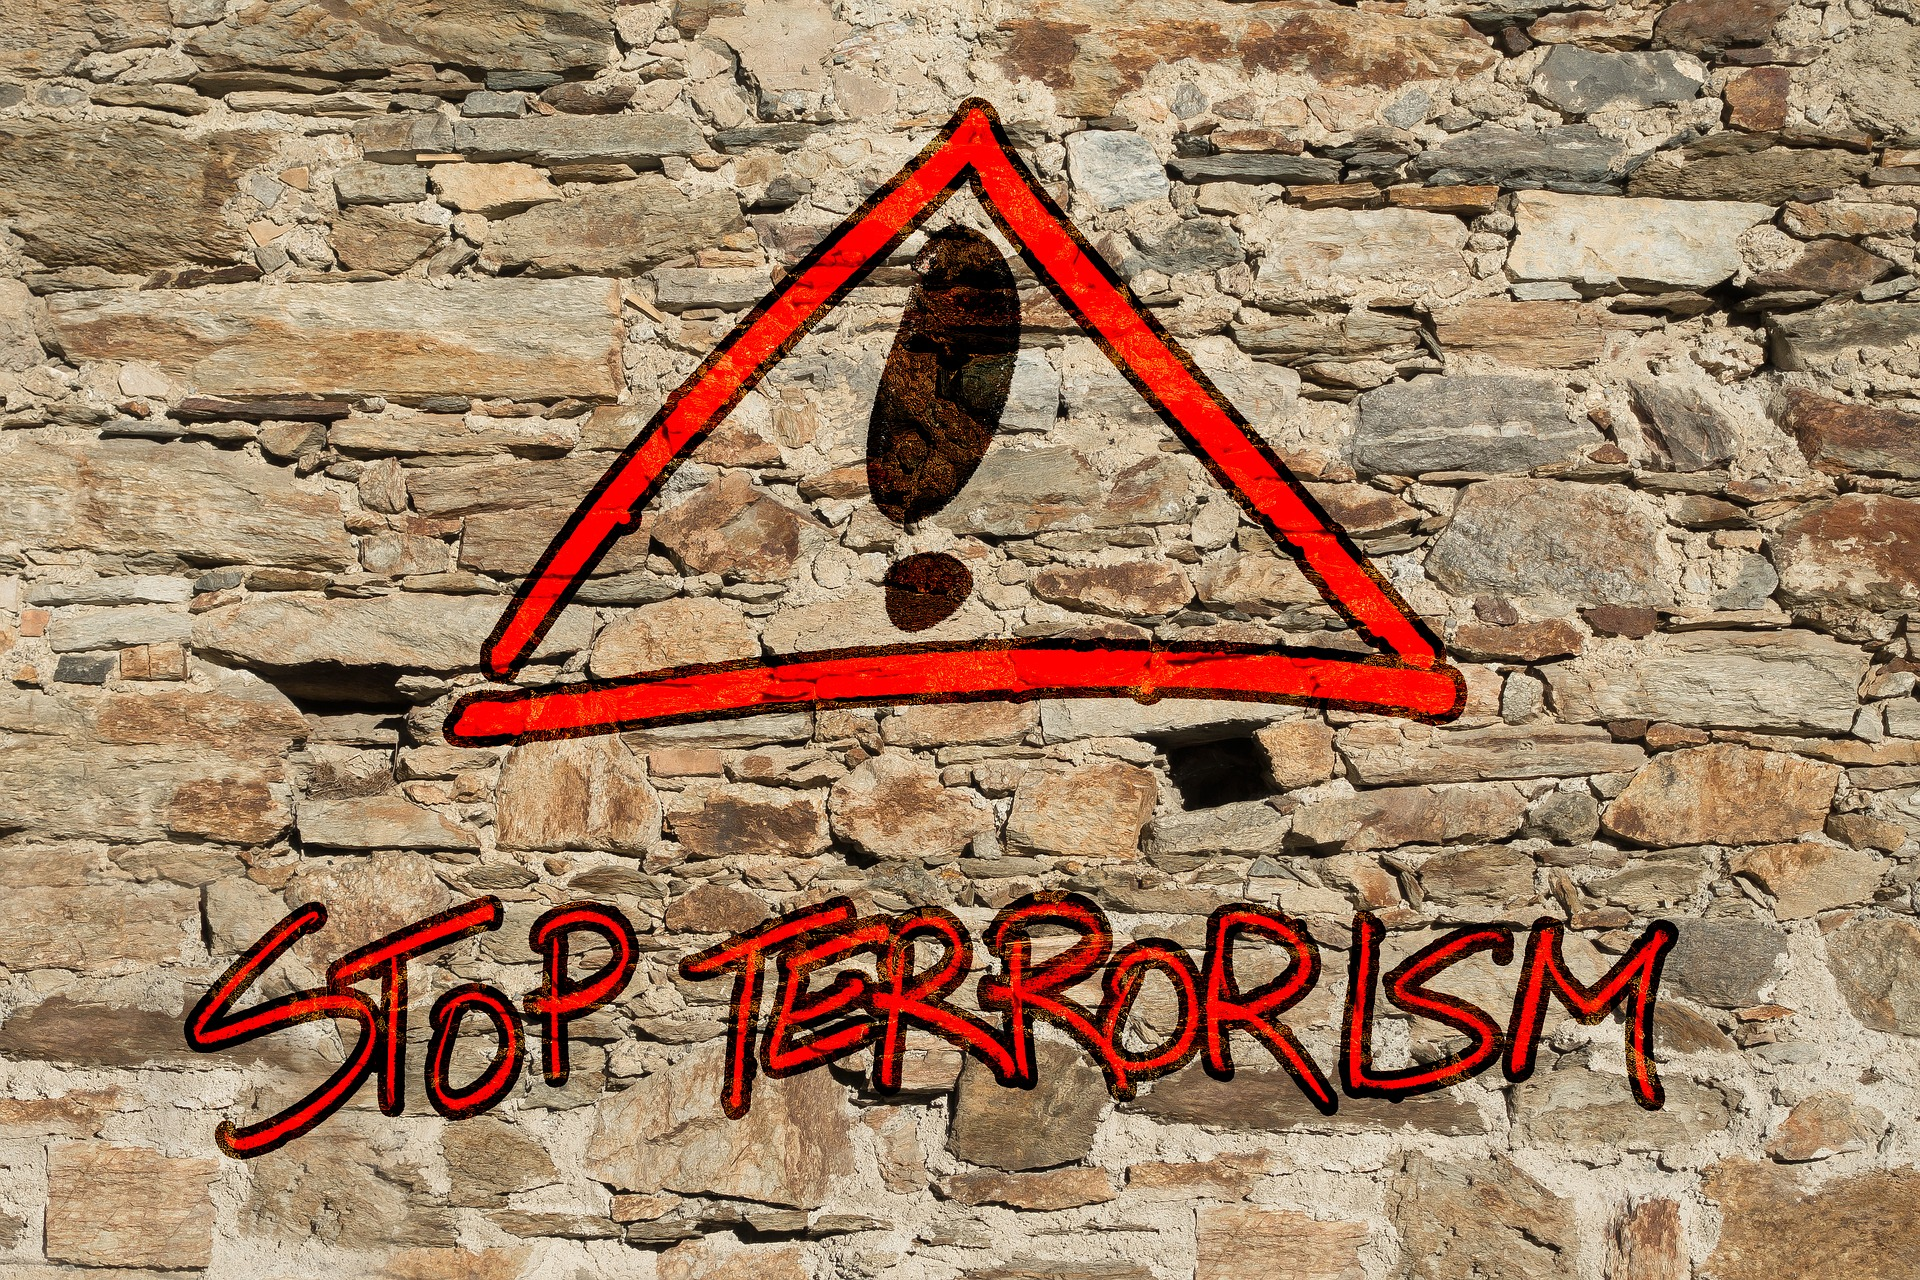 Stop Terrorism on the Wall